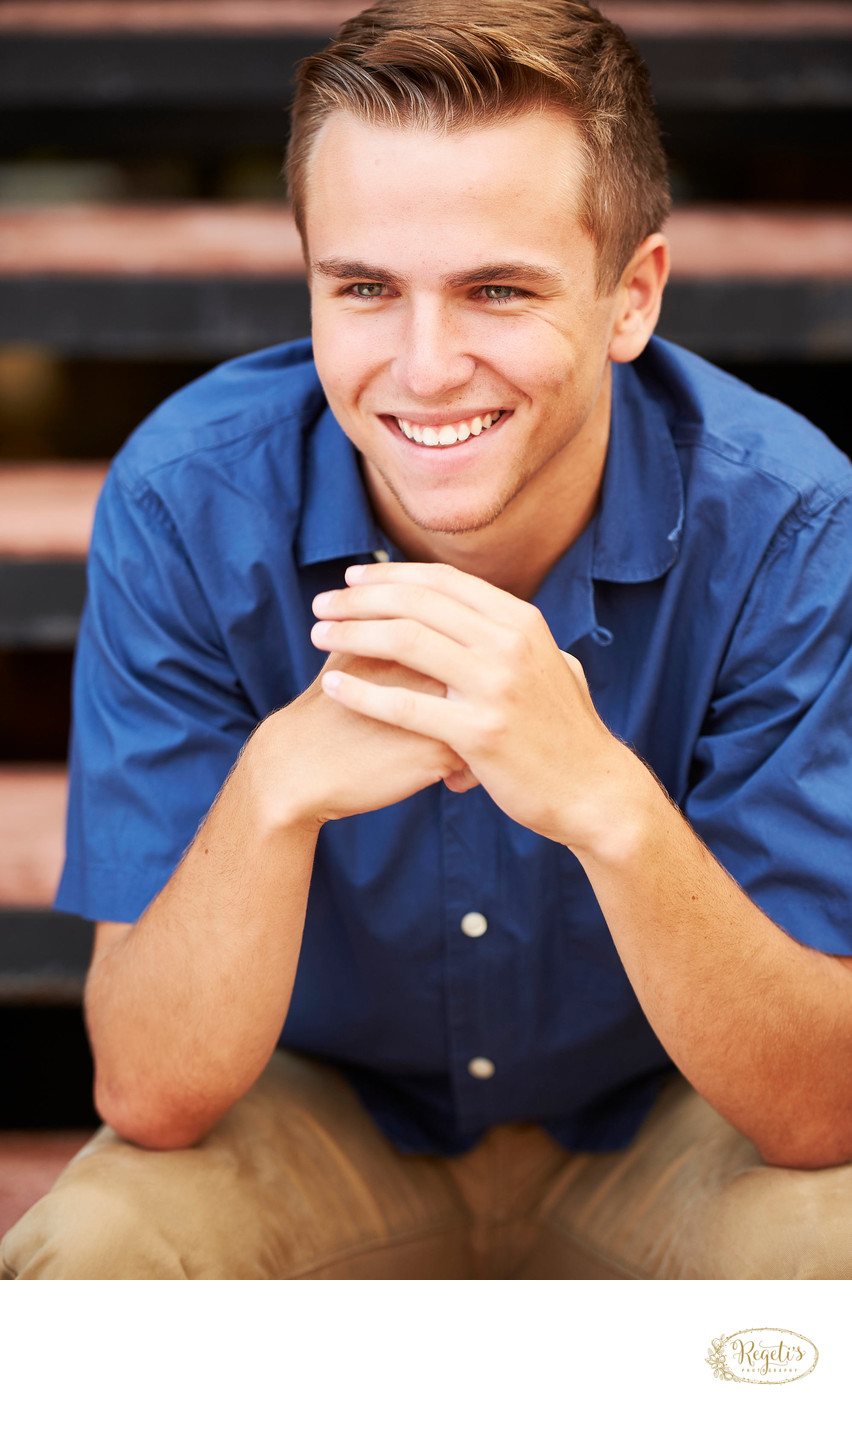 Christian's High School Senior Portrait